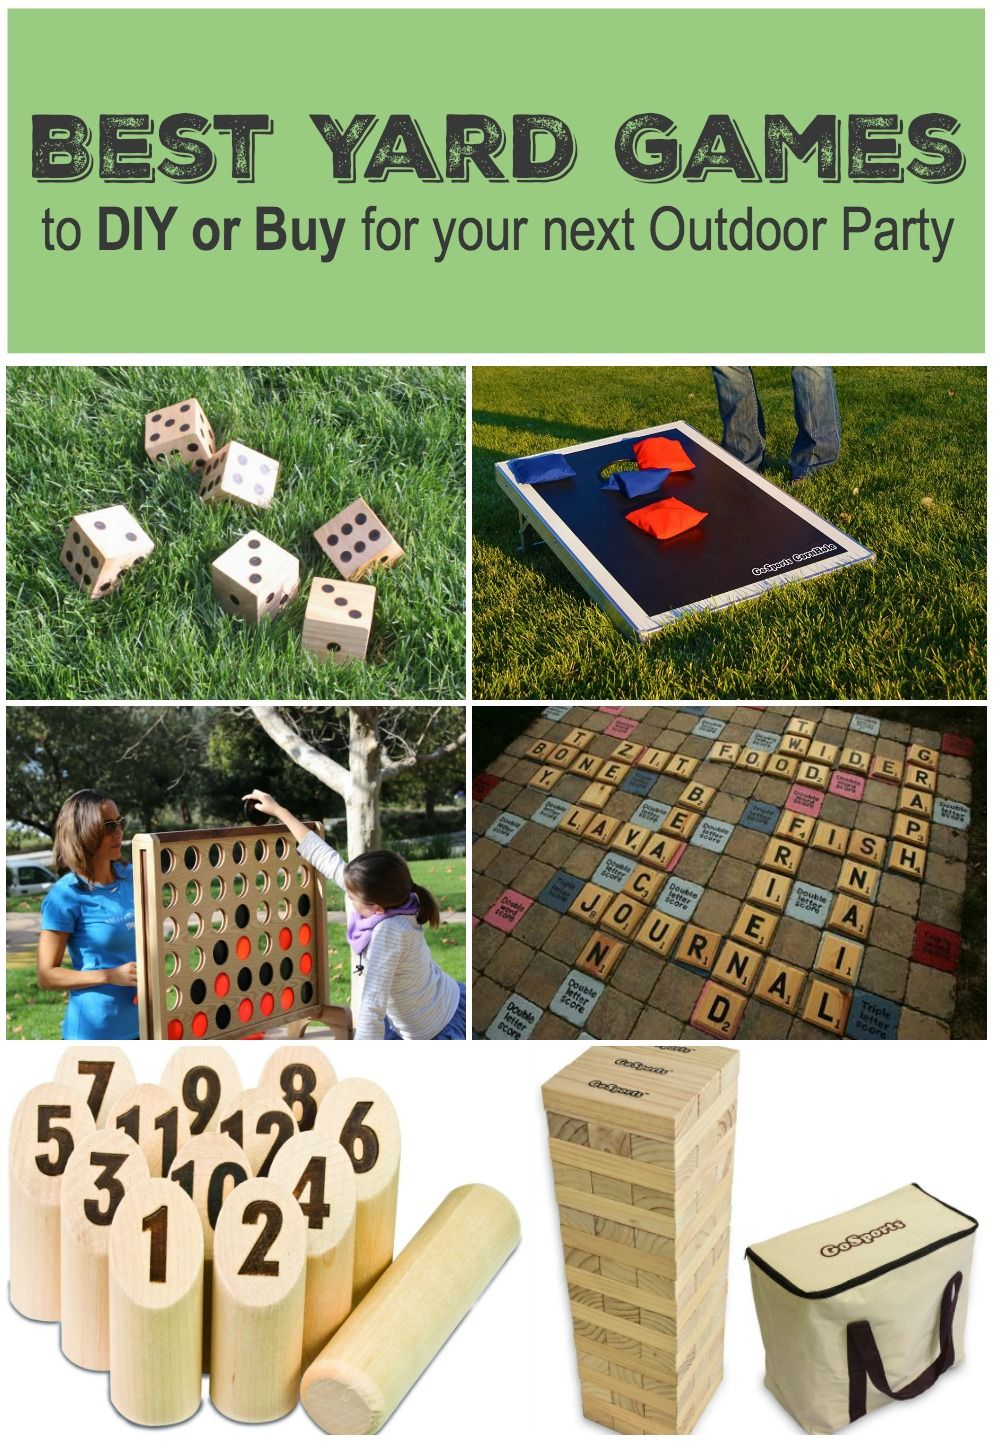 Best Yard Games For An Outdoor Party Sometimes Homemade Diy